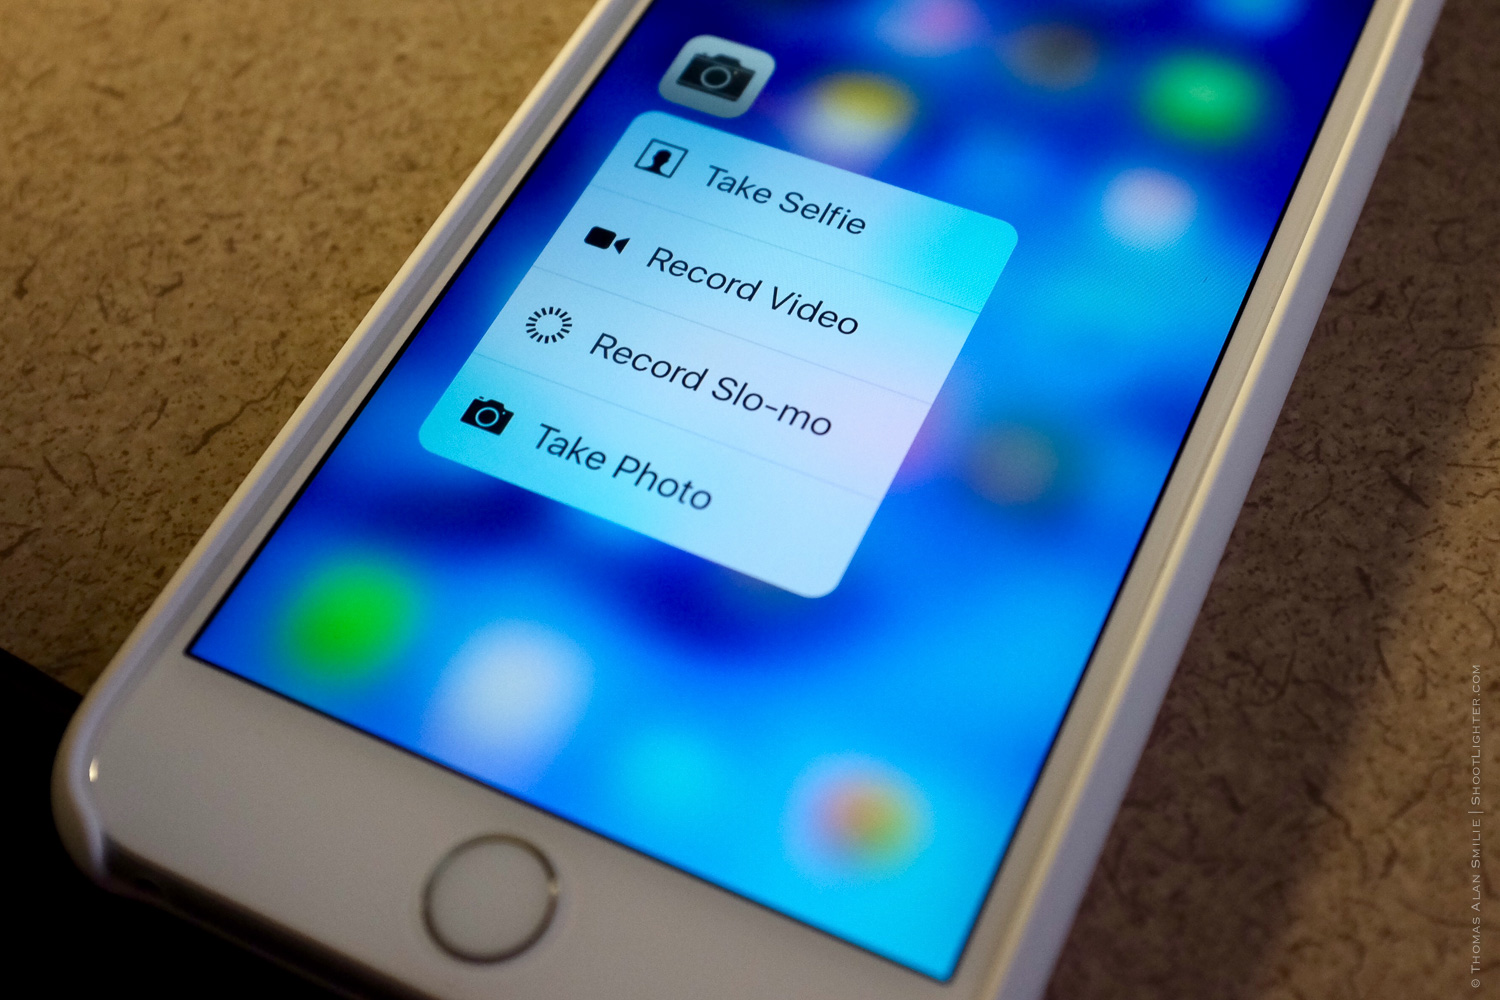 3D Touch on the new iPhone 6s Plus.